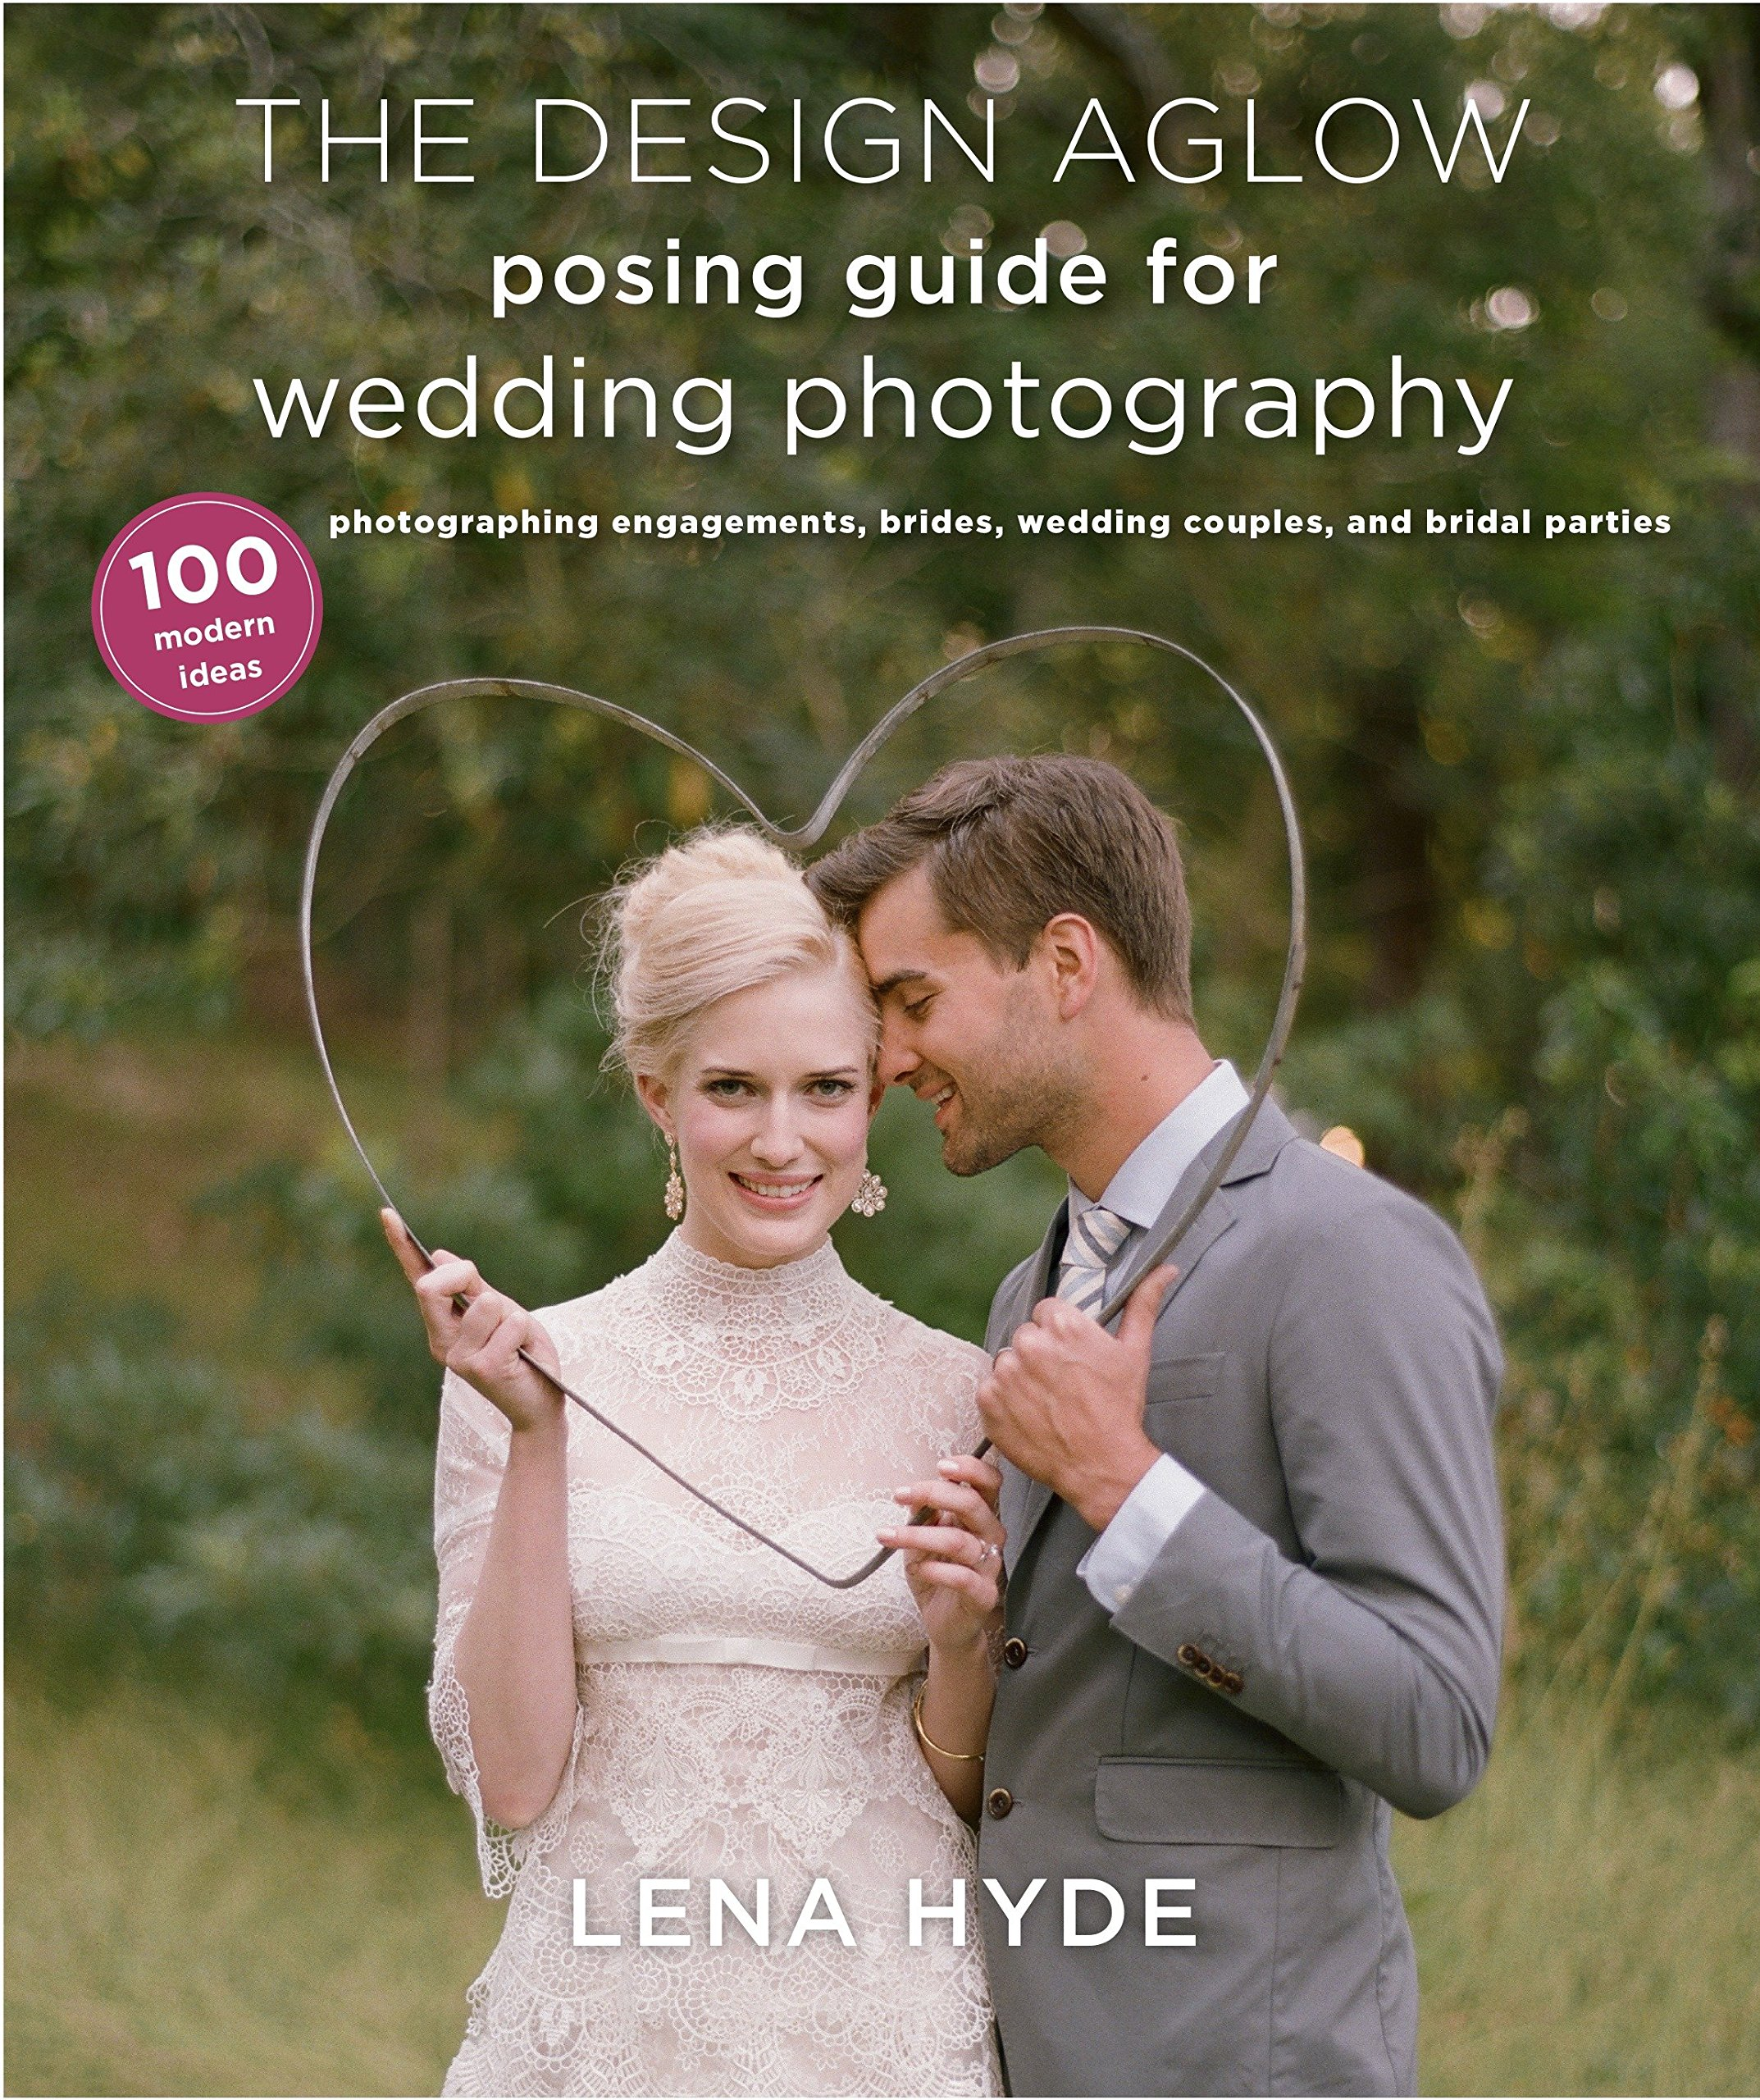 The design aglow posing guide for wedding photography 100 modern ideas for photographing engagements brides wedding couples and wedding parties lena